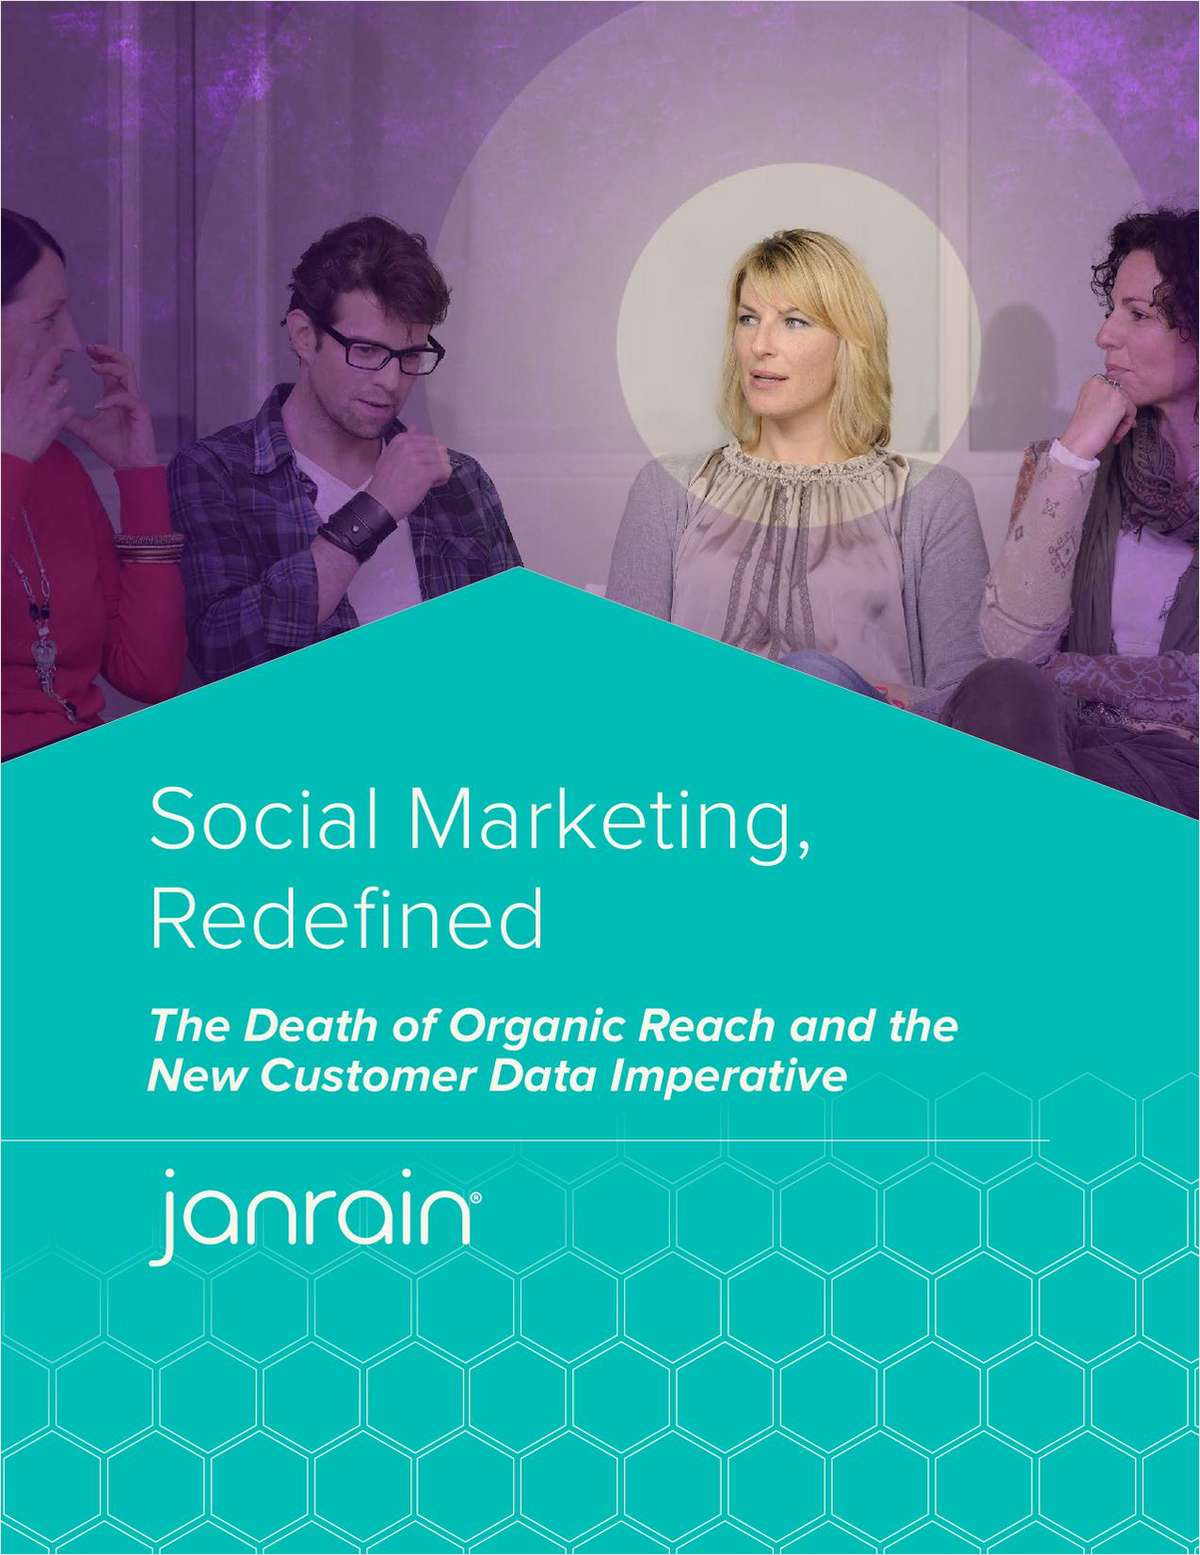 Social Marketing, Redefined: The Death of Organic Reach and the New Customer Data Imperative